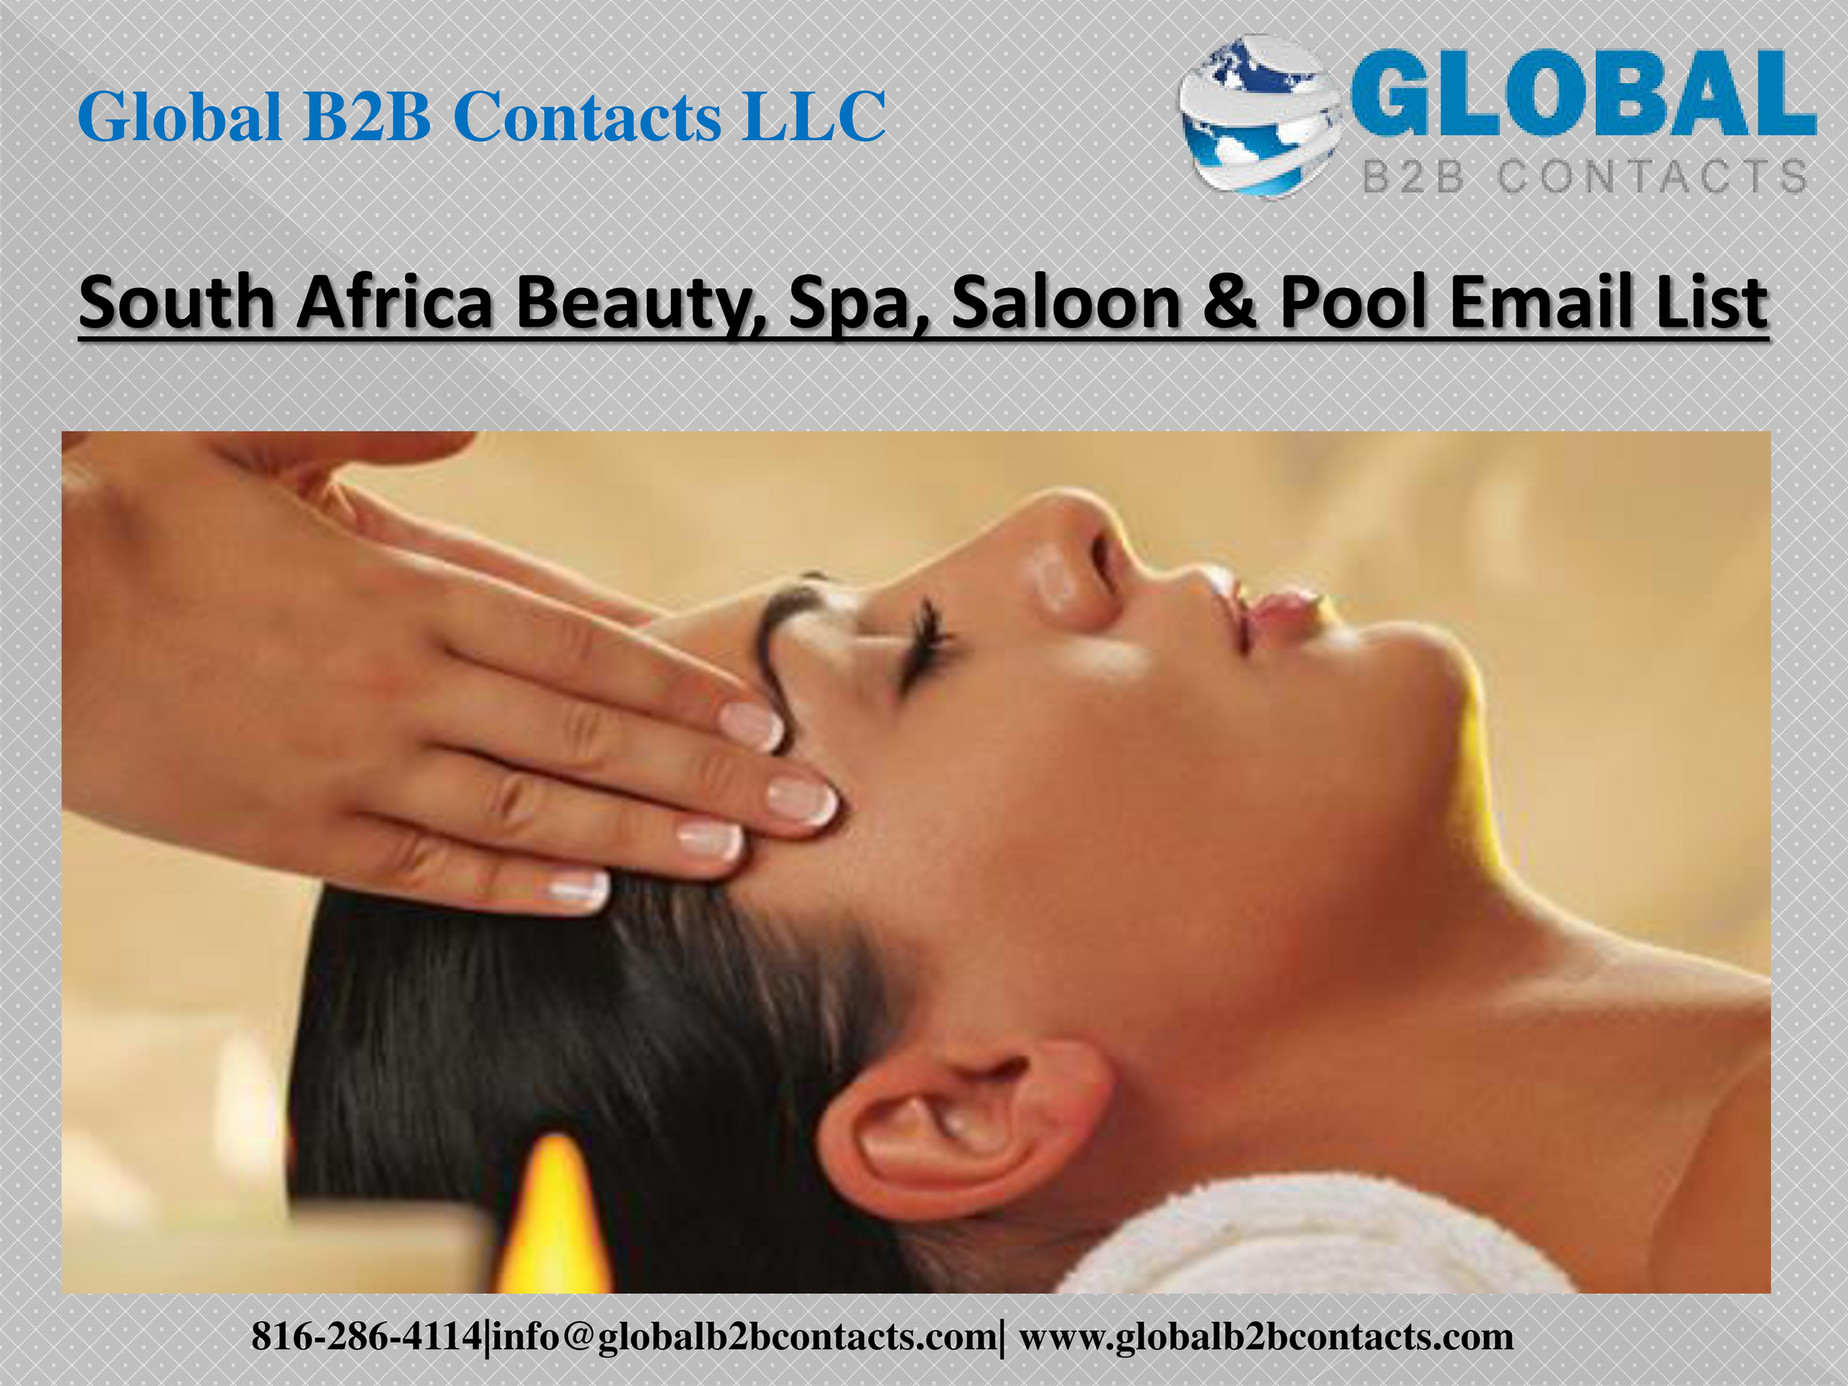 Globalb2bcontacts LLC - South Africa Beauty, Spa, Saloon